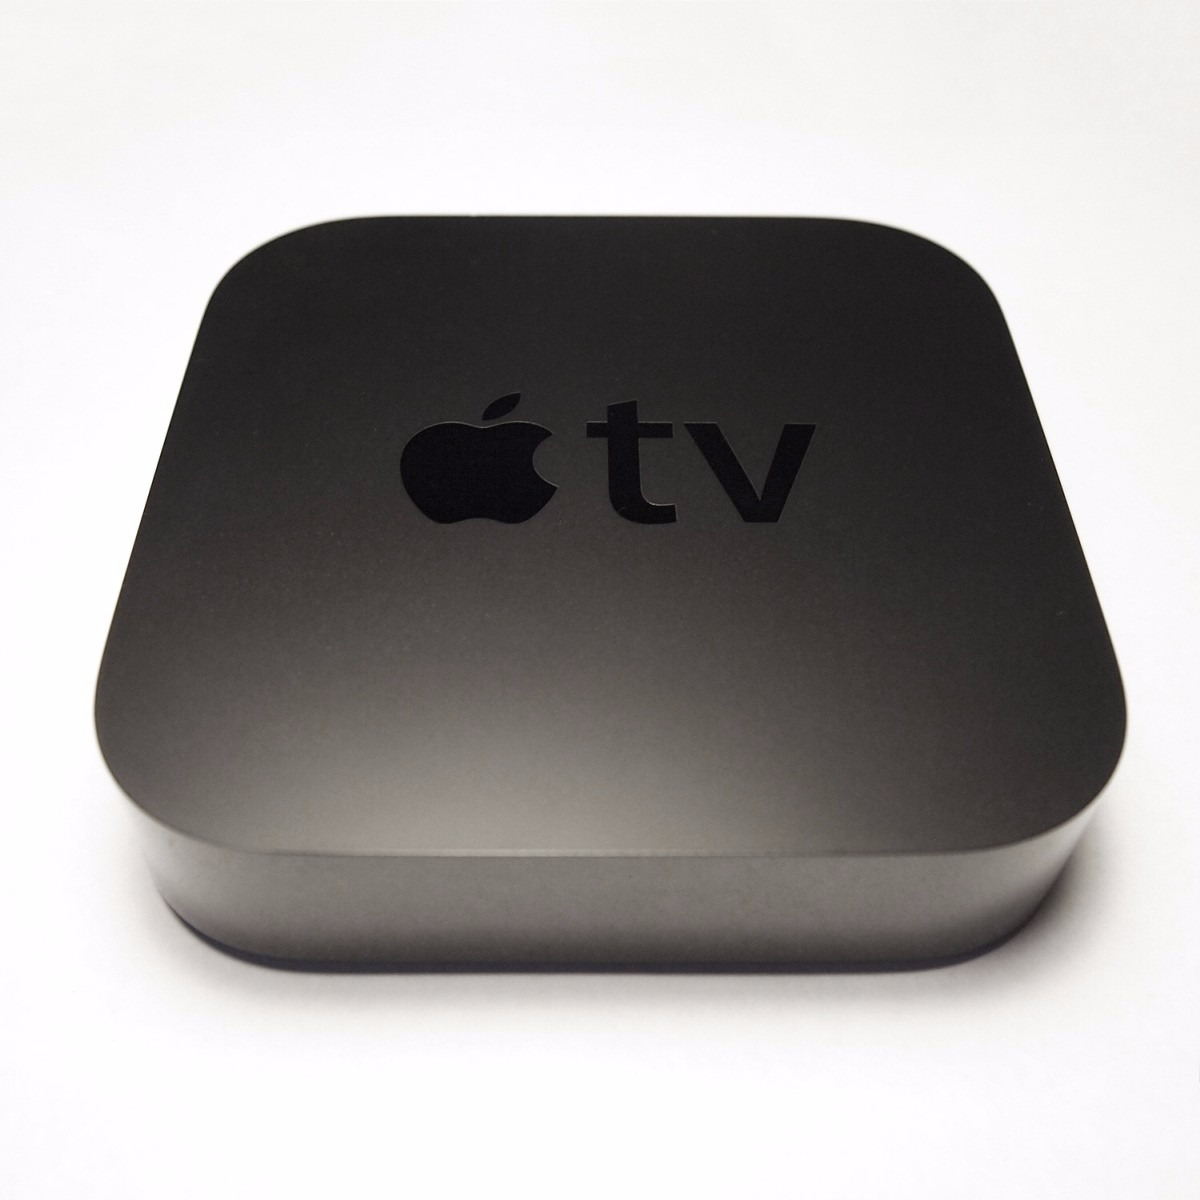 Rumours on the New Apple TV Picture